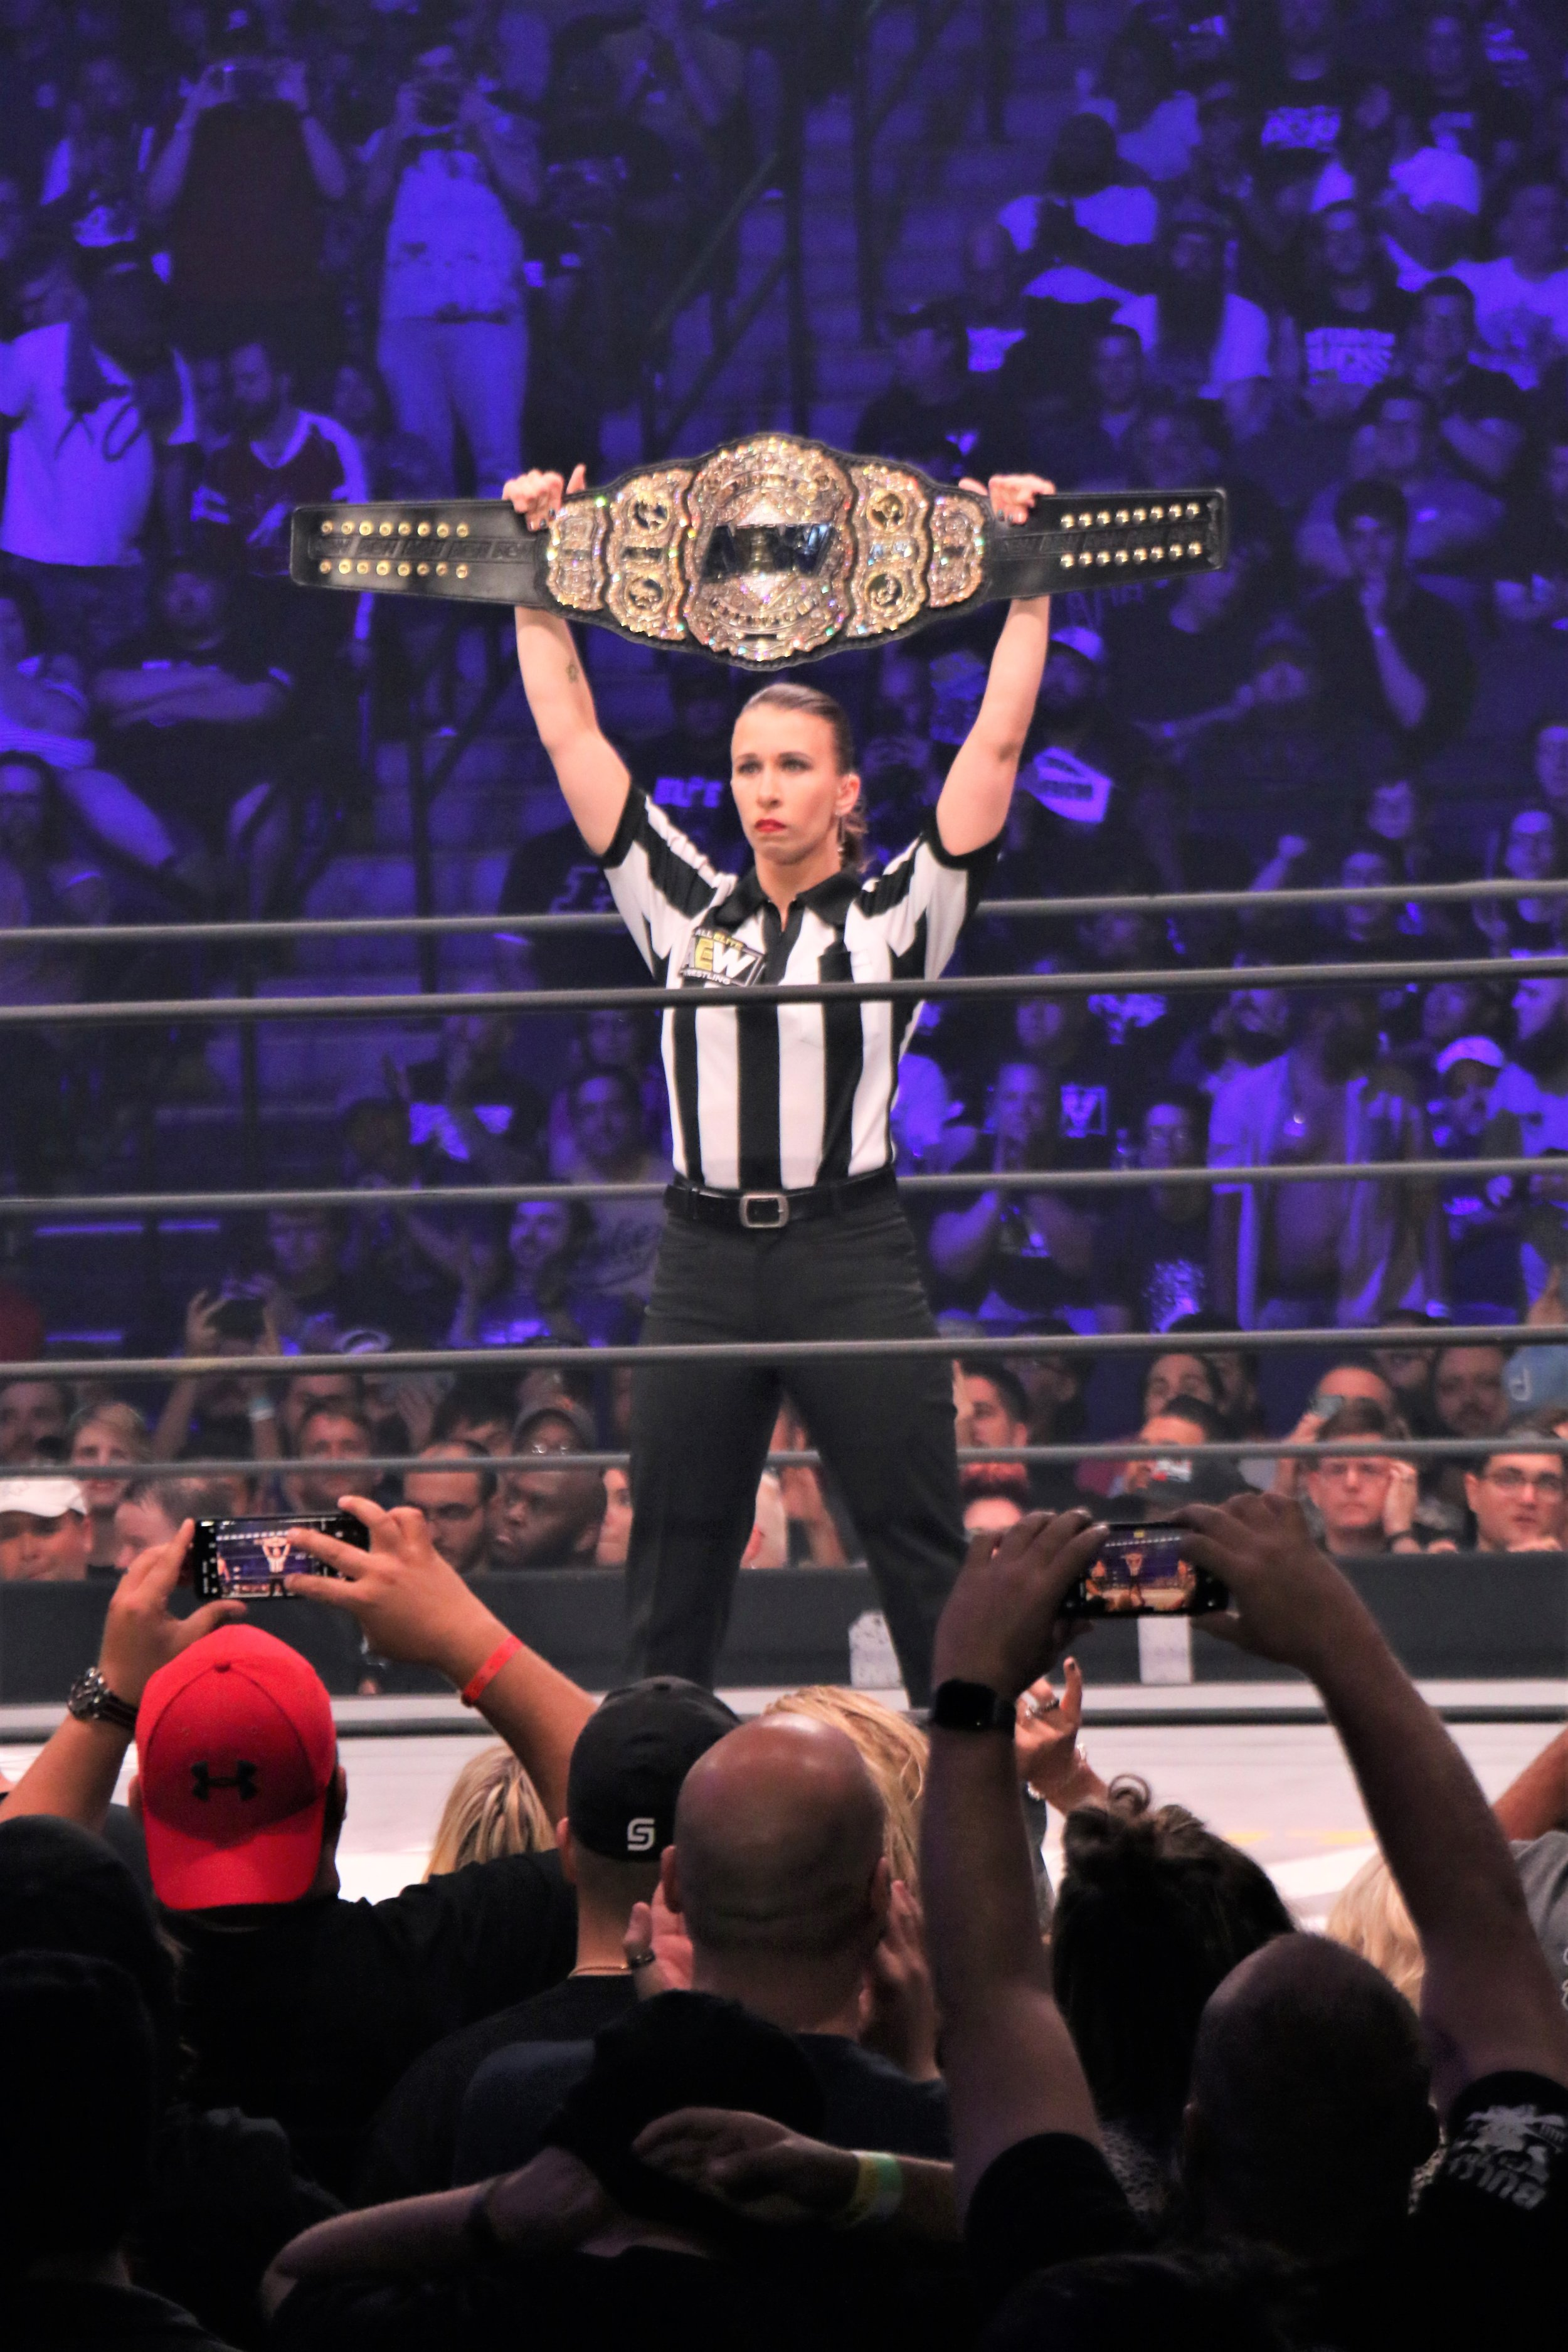 Referee Aubrey Edwards holds up the AEW Championship.